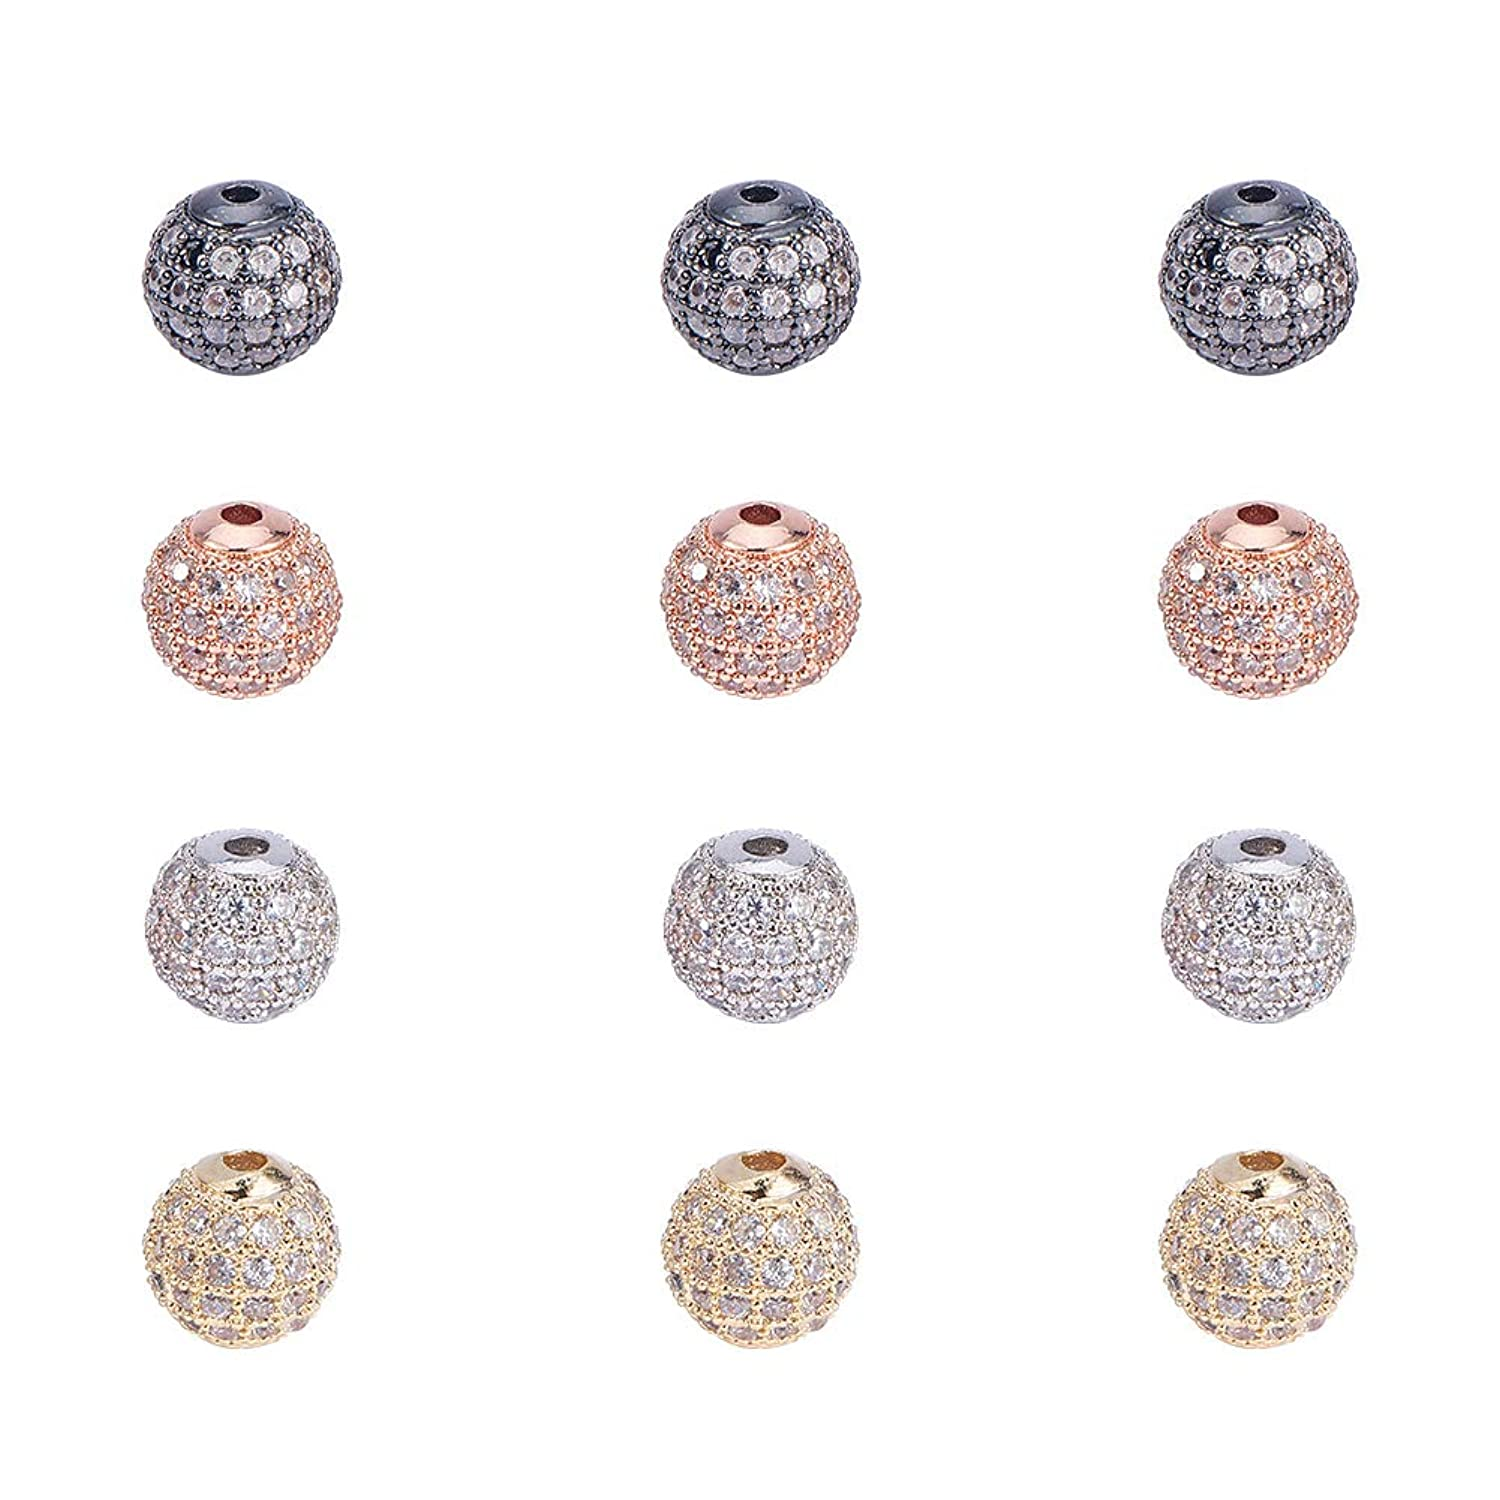 PandaHall Elite 12 Pcs 8mm Brass CZ Cubic Zirconia Pave Micro Setting Round Disco Ball Spacers Beads 4 Colors for Jewelry Making